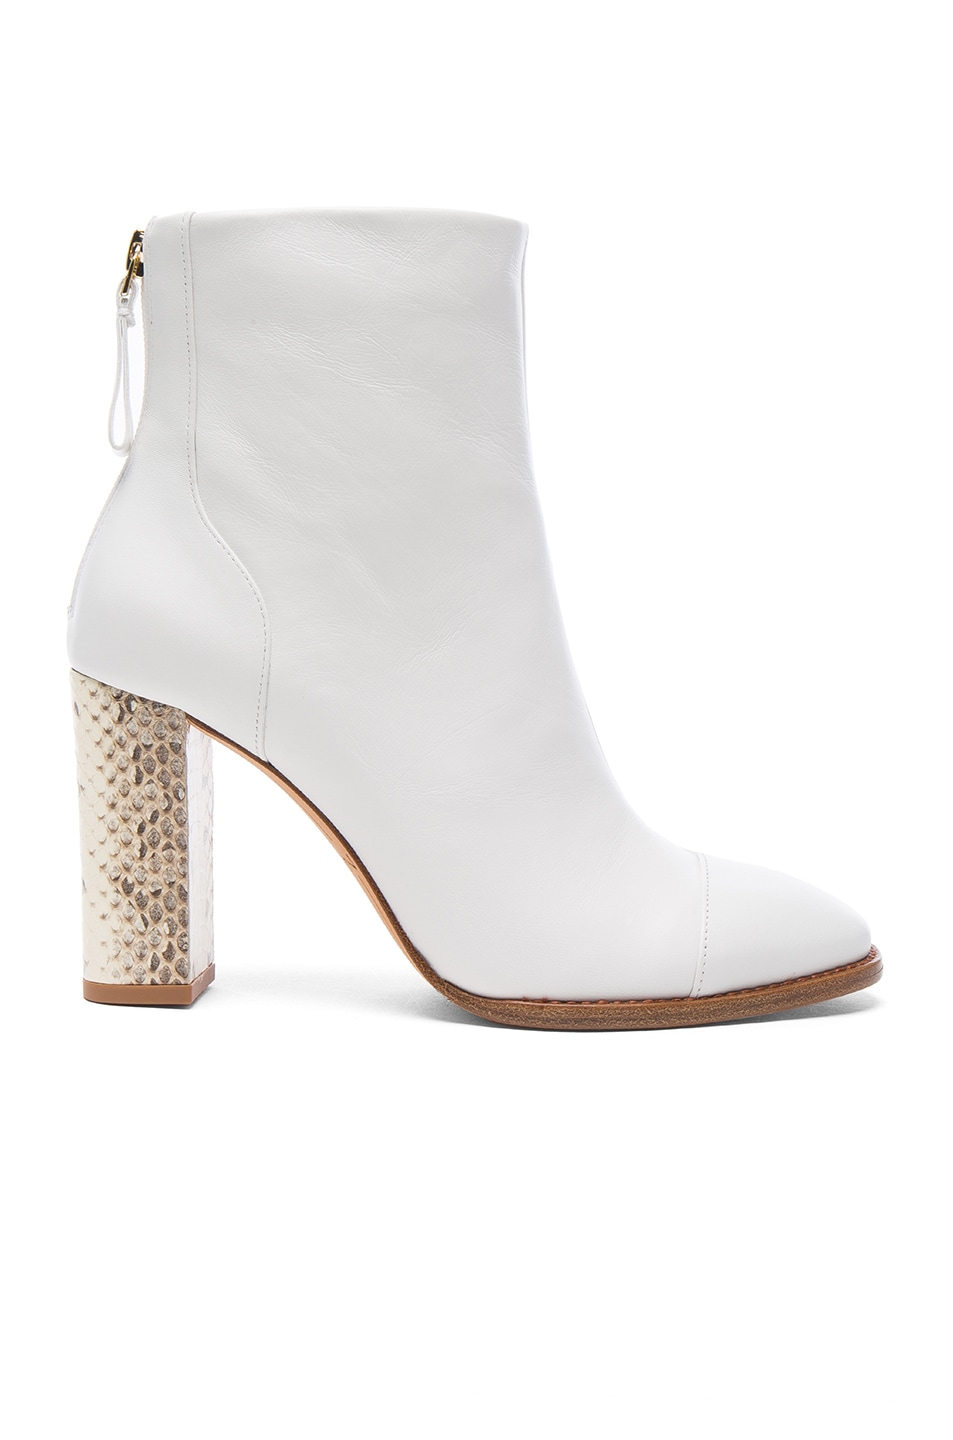 Image 1 of Alexandre Birman Leather Bibiana Watersnake Booties in White & Natural